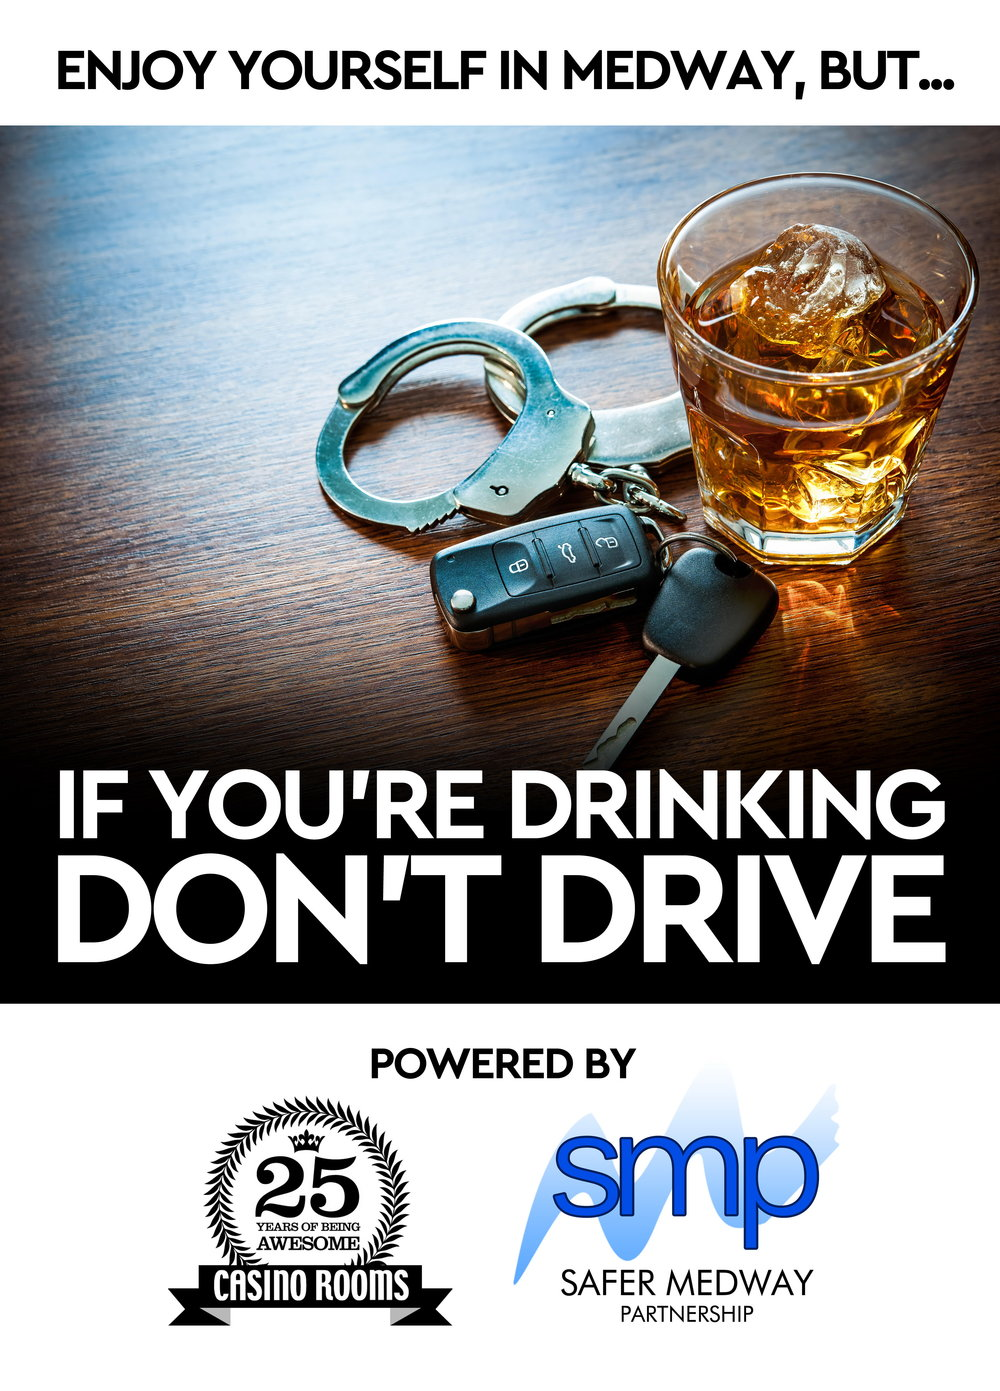 Don't drink and drivePoster v2.jpg